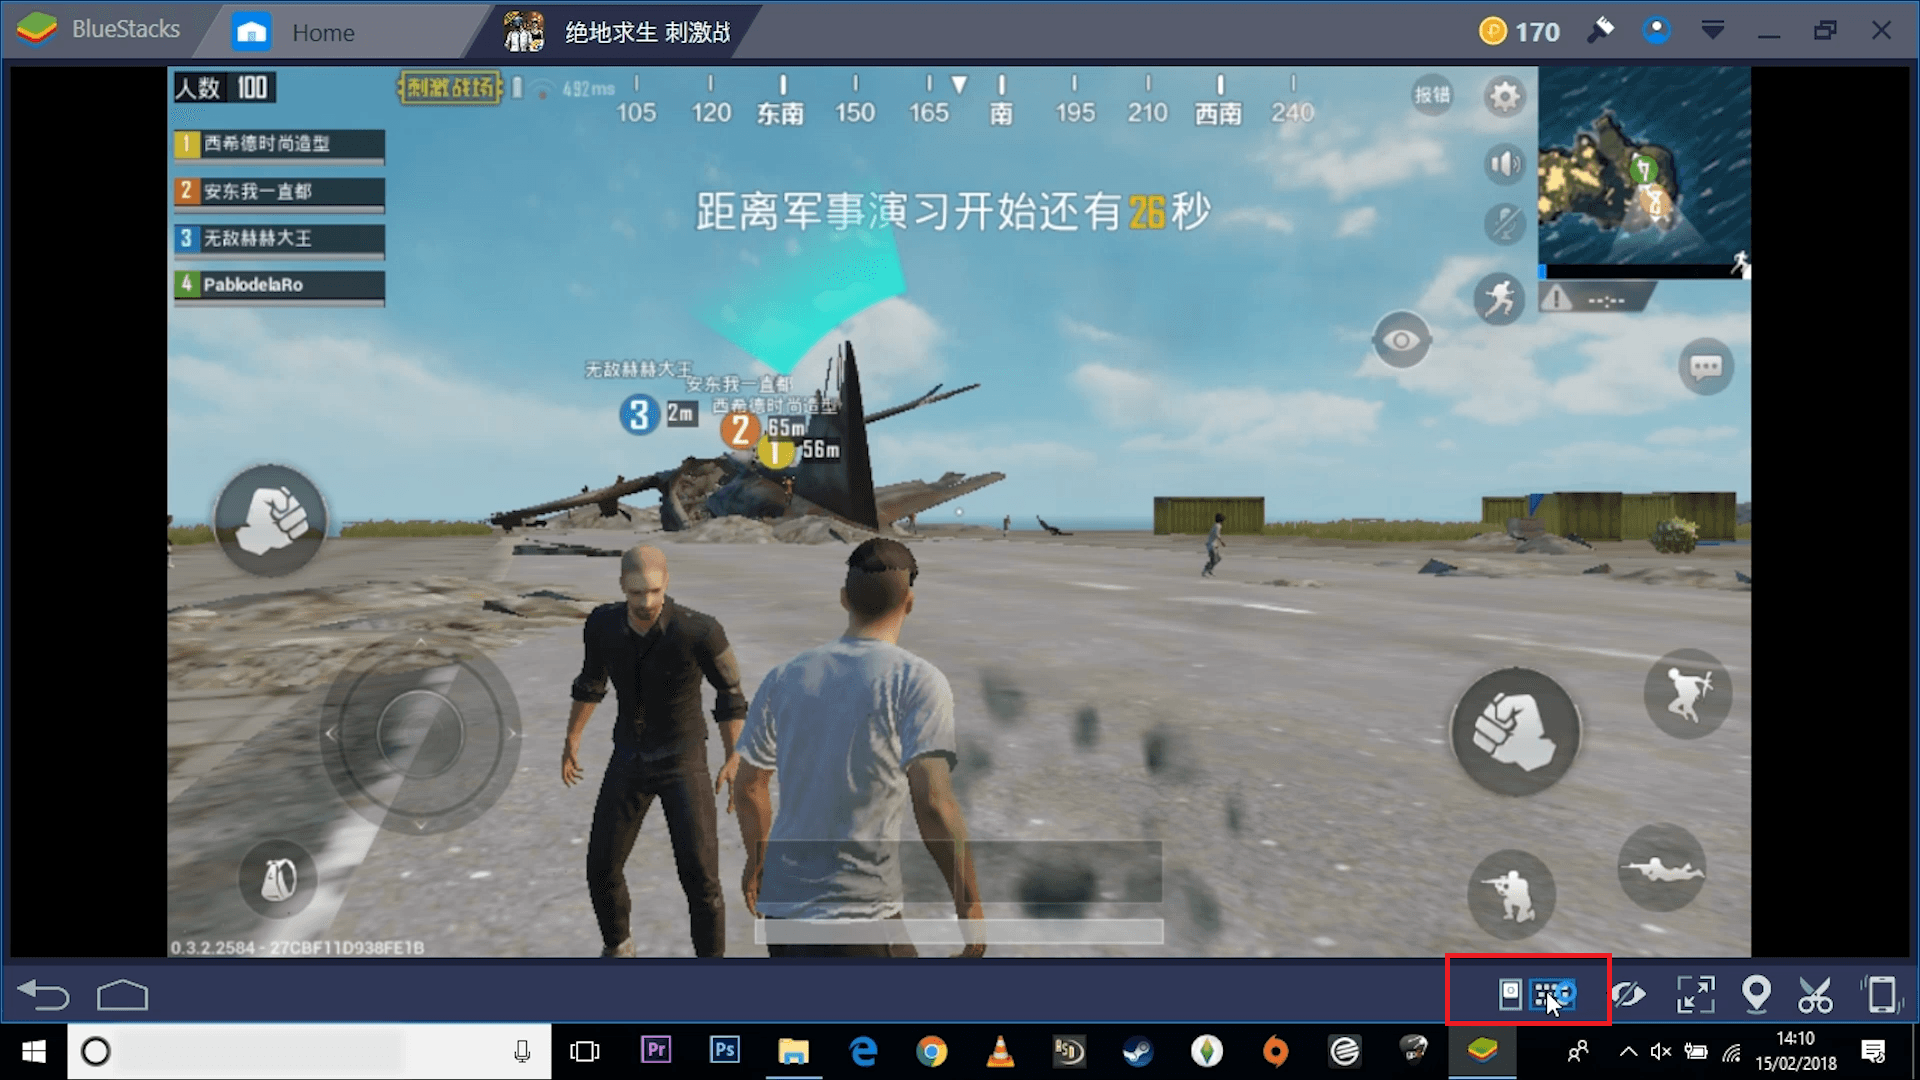 How To Play Pubg Mobile On Windows 10: How To Play PUBG Mobile 0.10.5.10144 On PC/Laptop [Windows